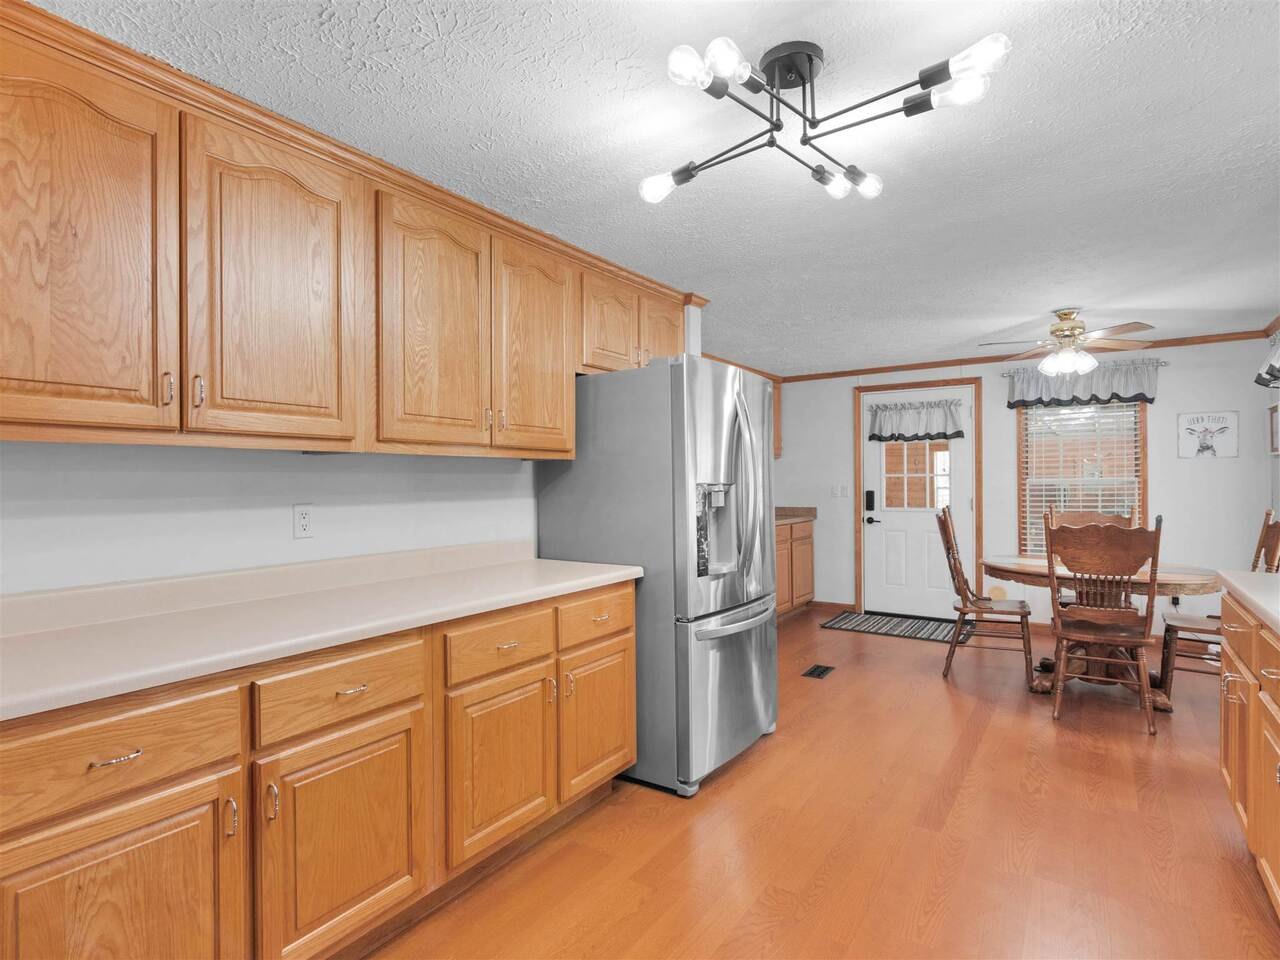 258 Country Kitchen Road Property Photo 4